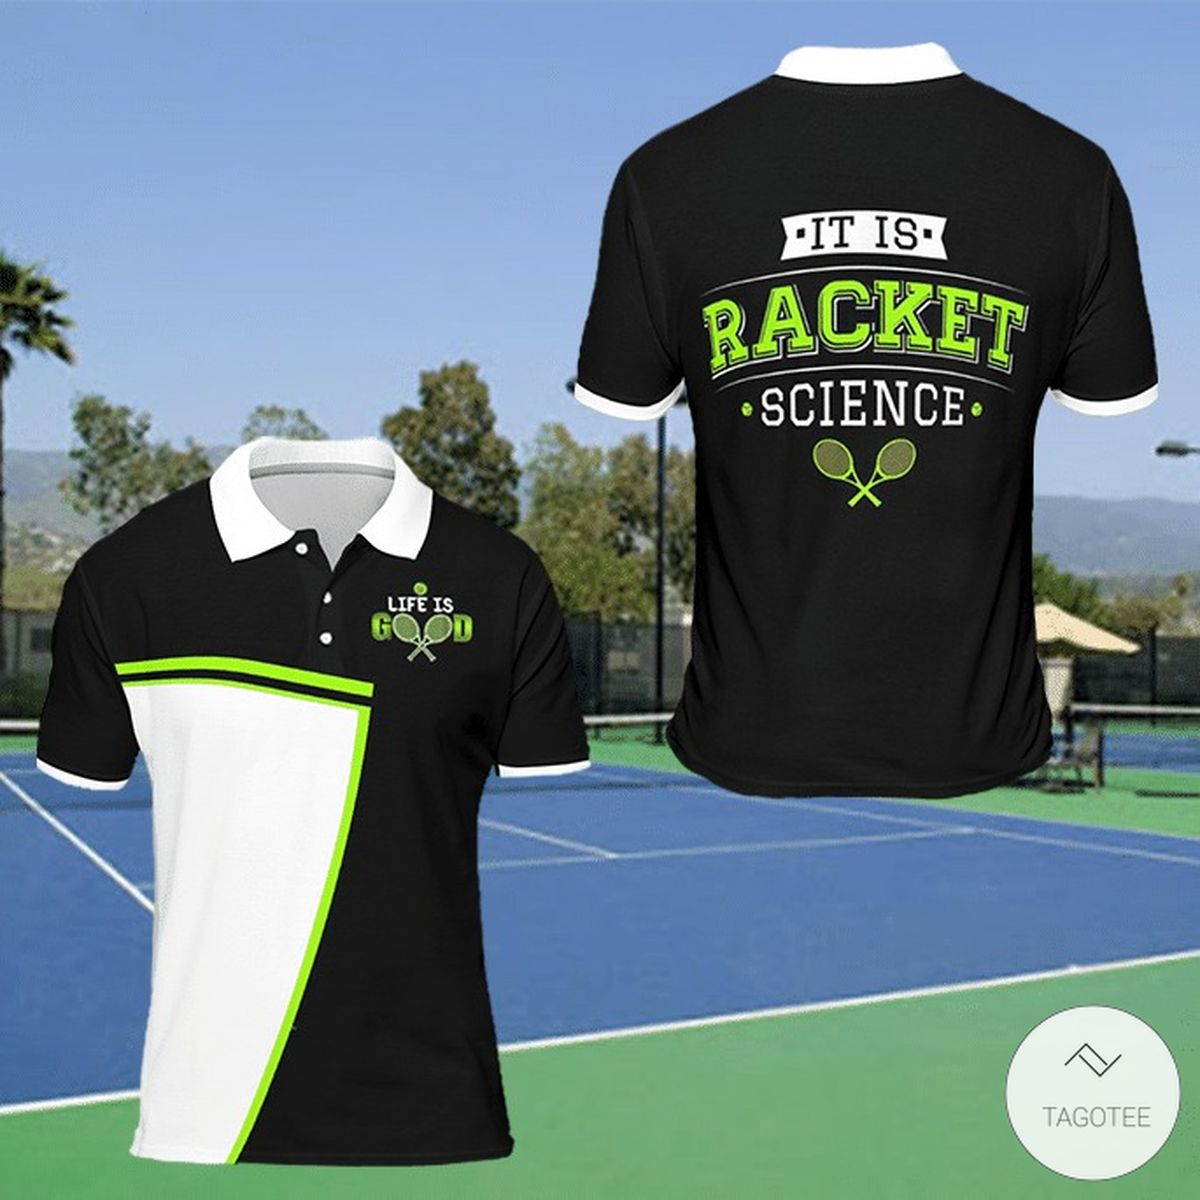 Tennis It Is Racket Science Polo Shirt